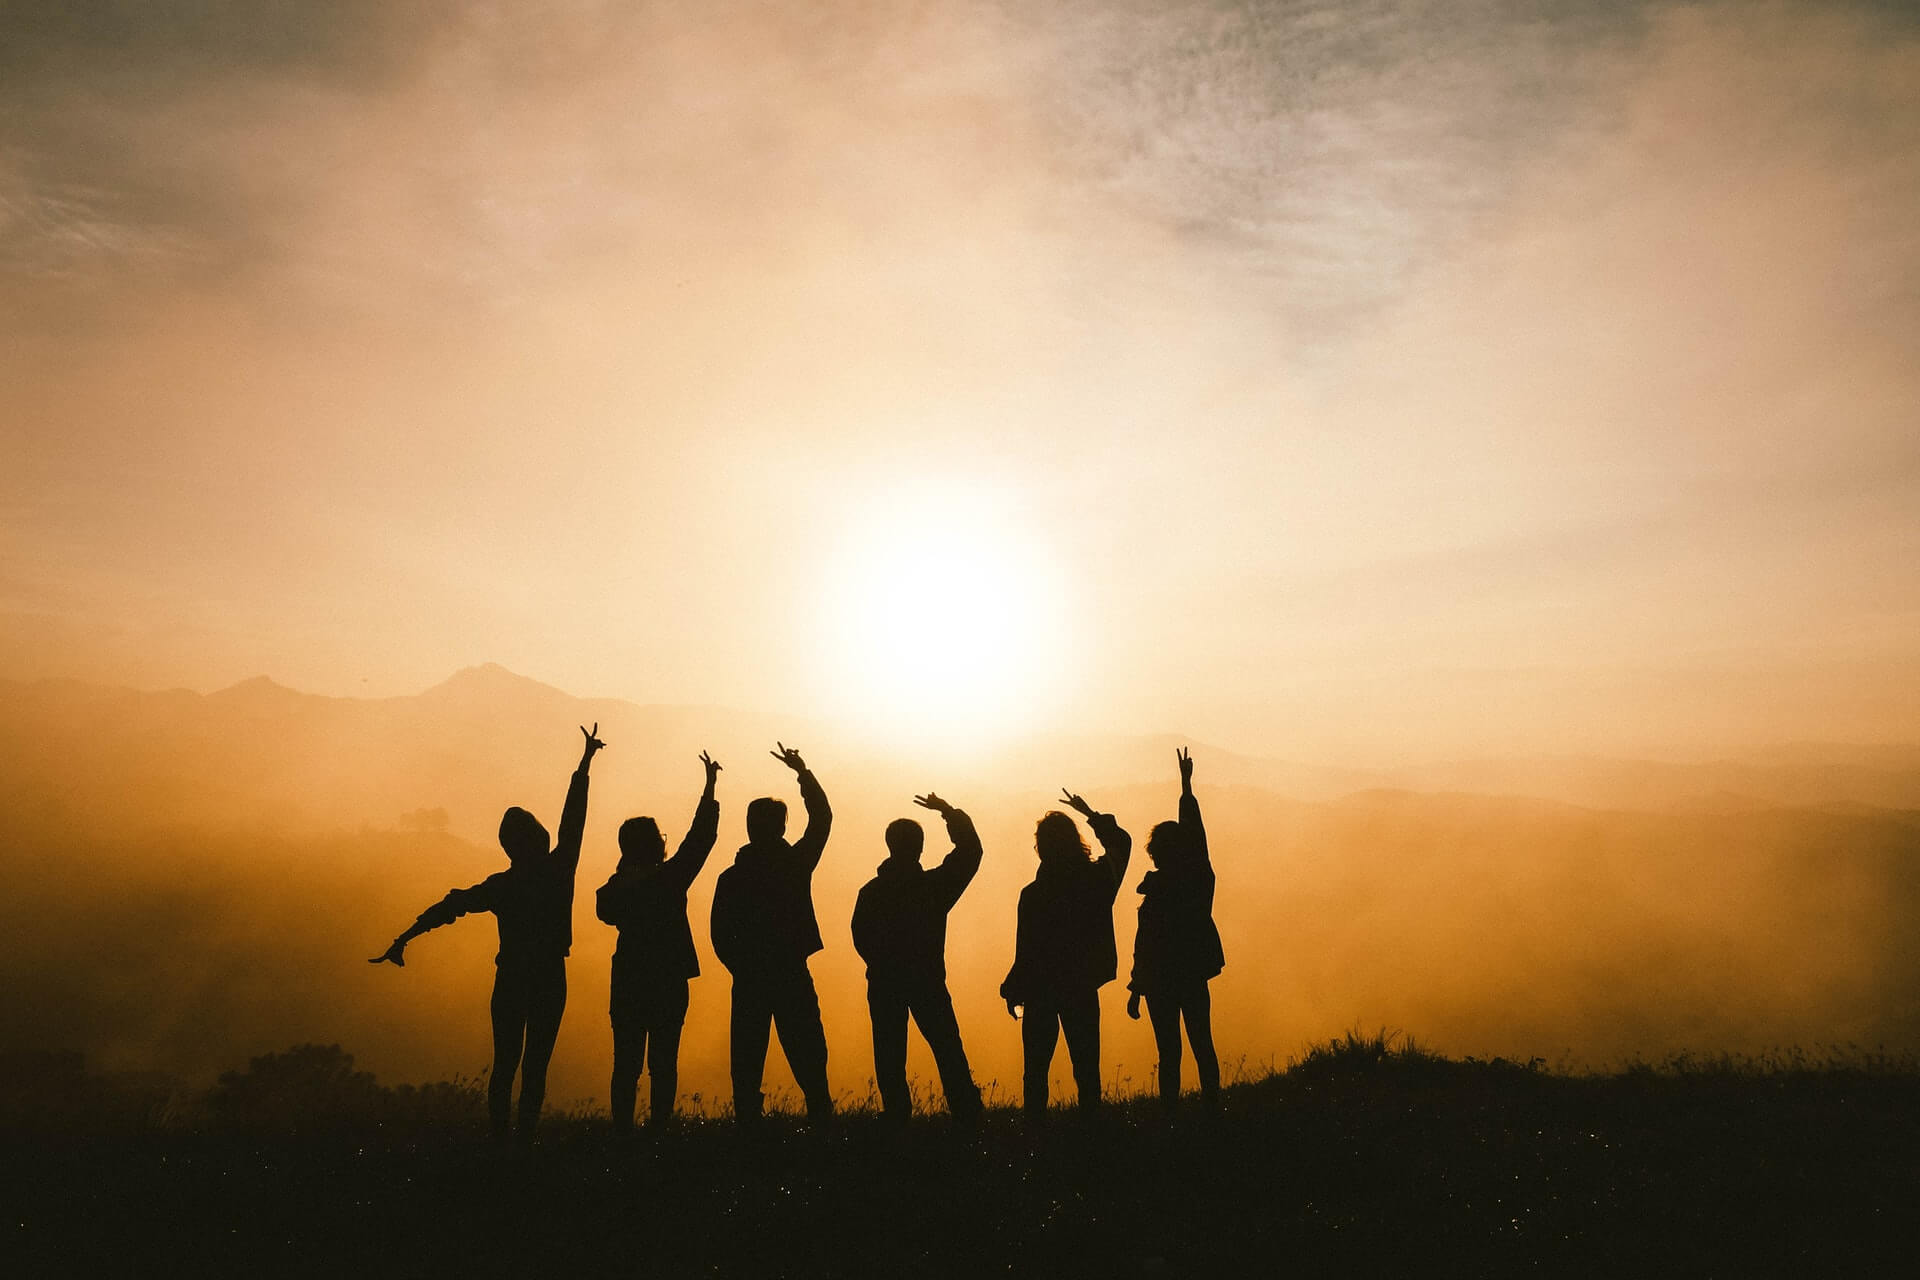 A group of travellers who met while staying in a hostel for the first time silhouetted against a sunset